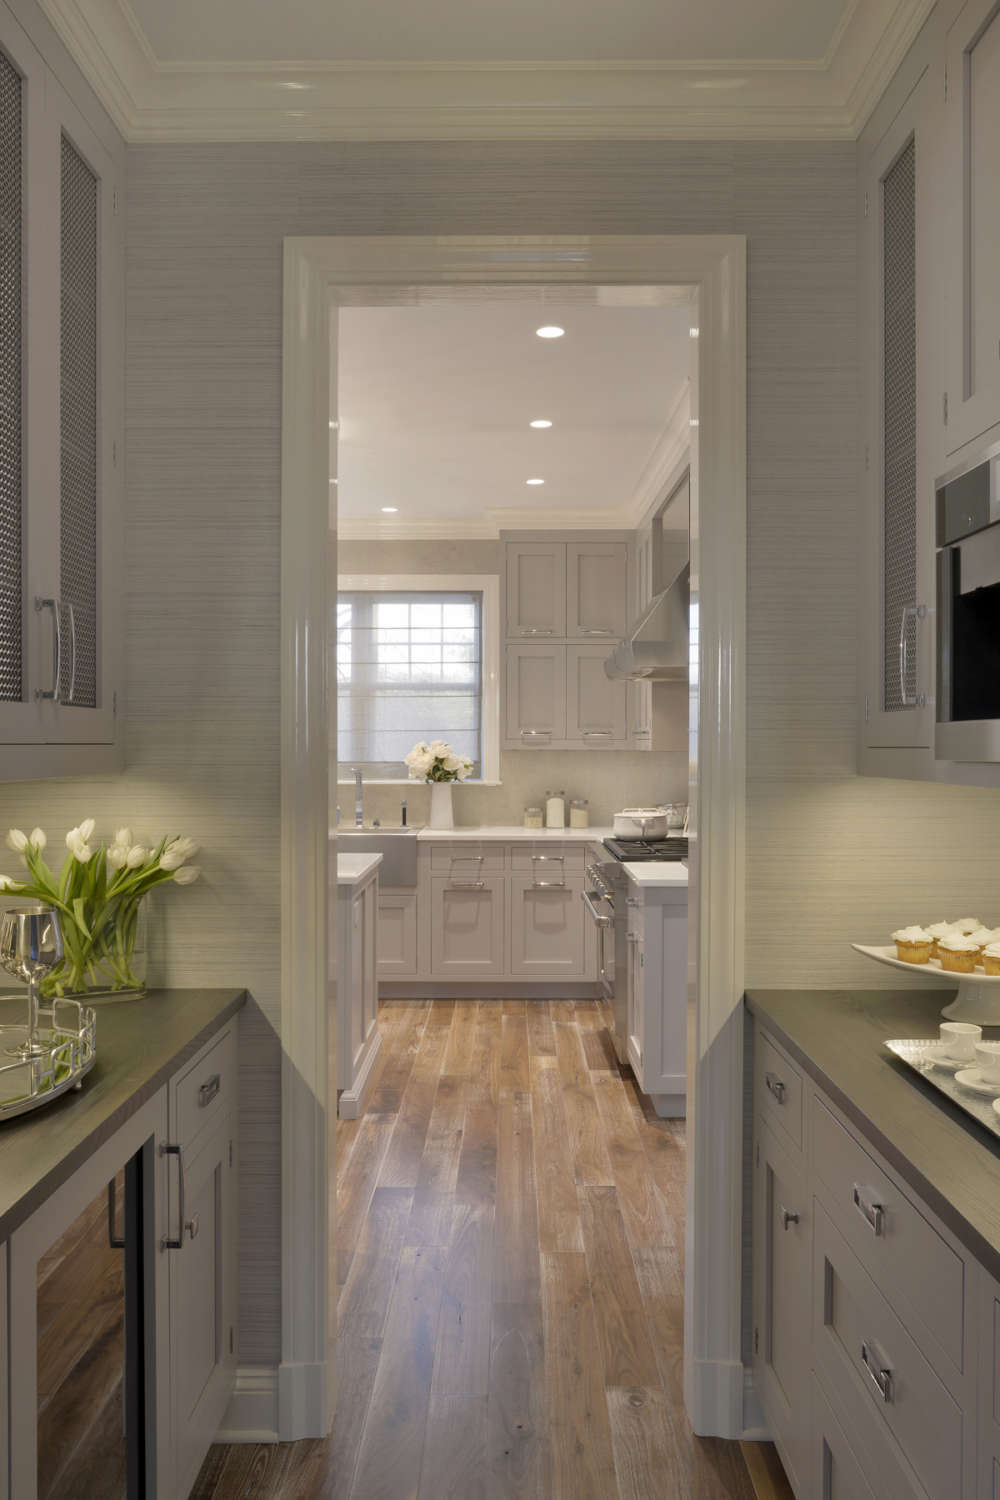 Butler's pantry features light grey painted shaker style Biotta cabinetry with metal door inserts, grey walls and espresso countertops. Pantry opens into an expansive kitchen. Design by Randy O'Kane, CKD, of Bilotta kitchens.